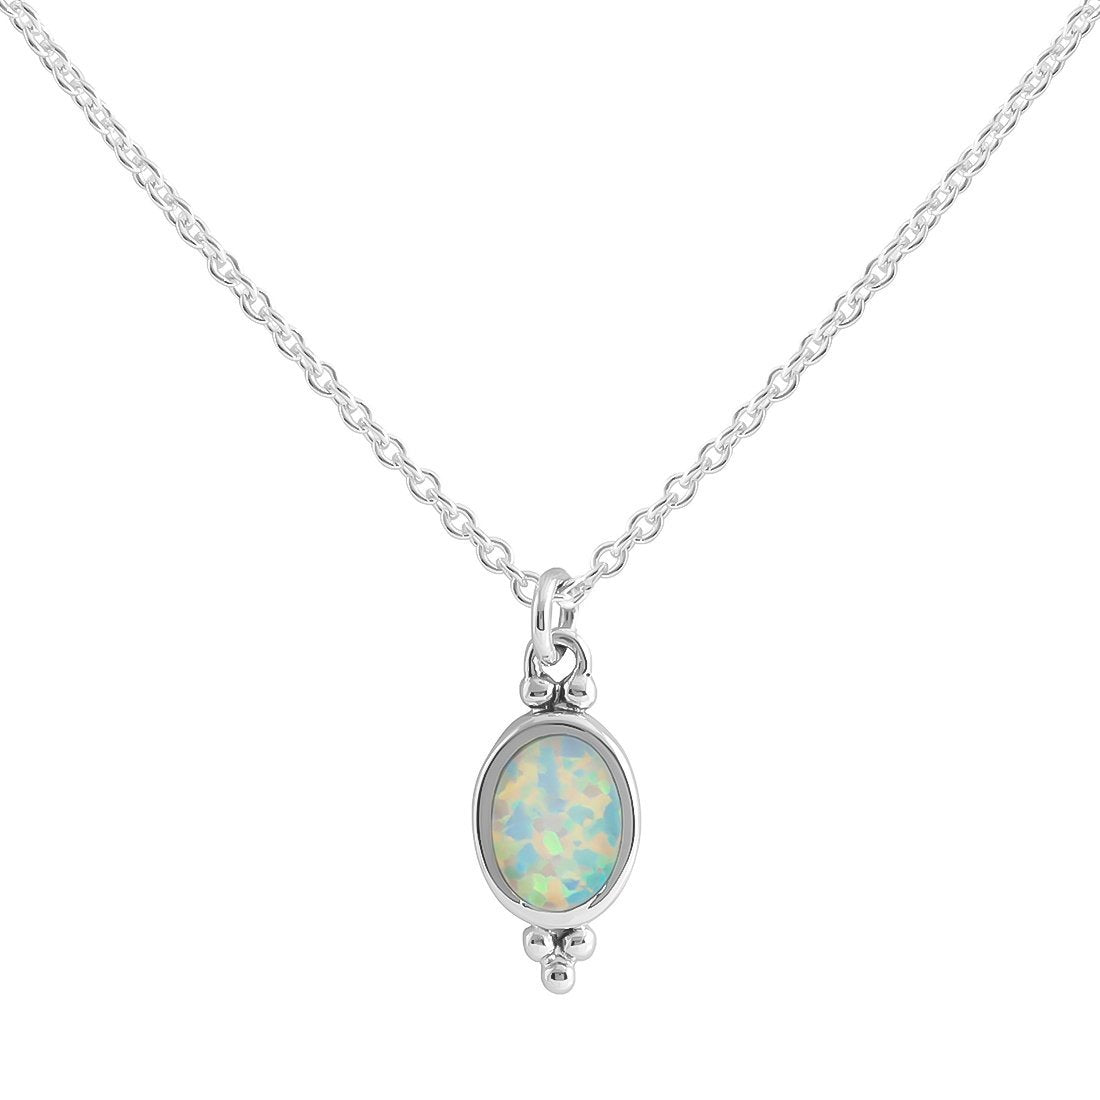 Midsummer Star Necklaces Moon Song Opal Necklace